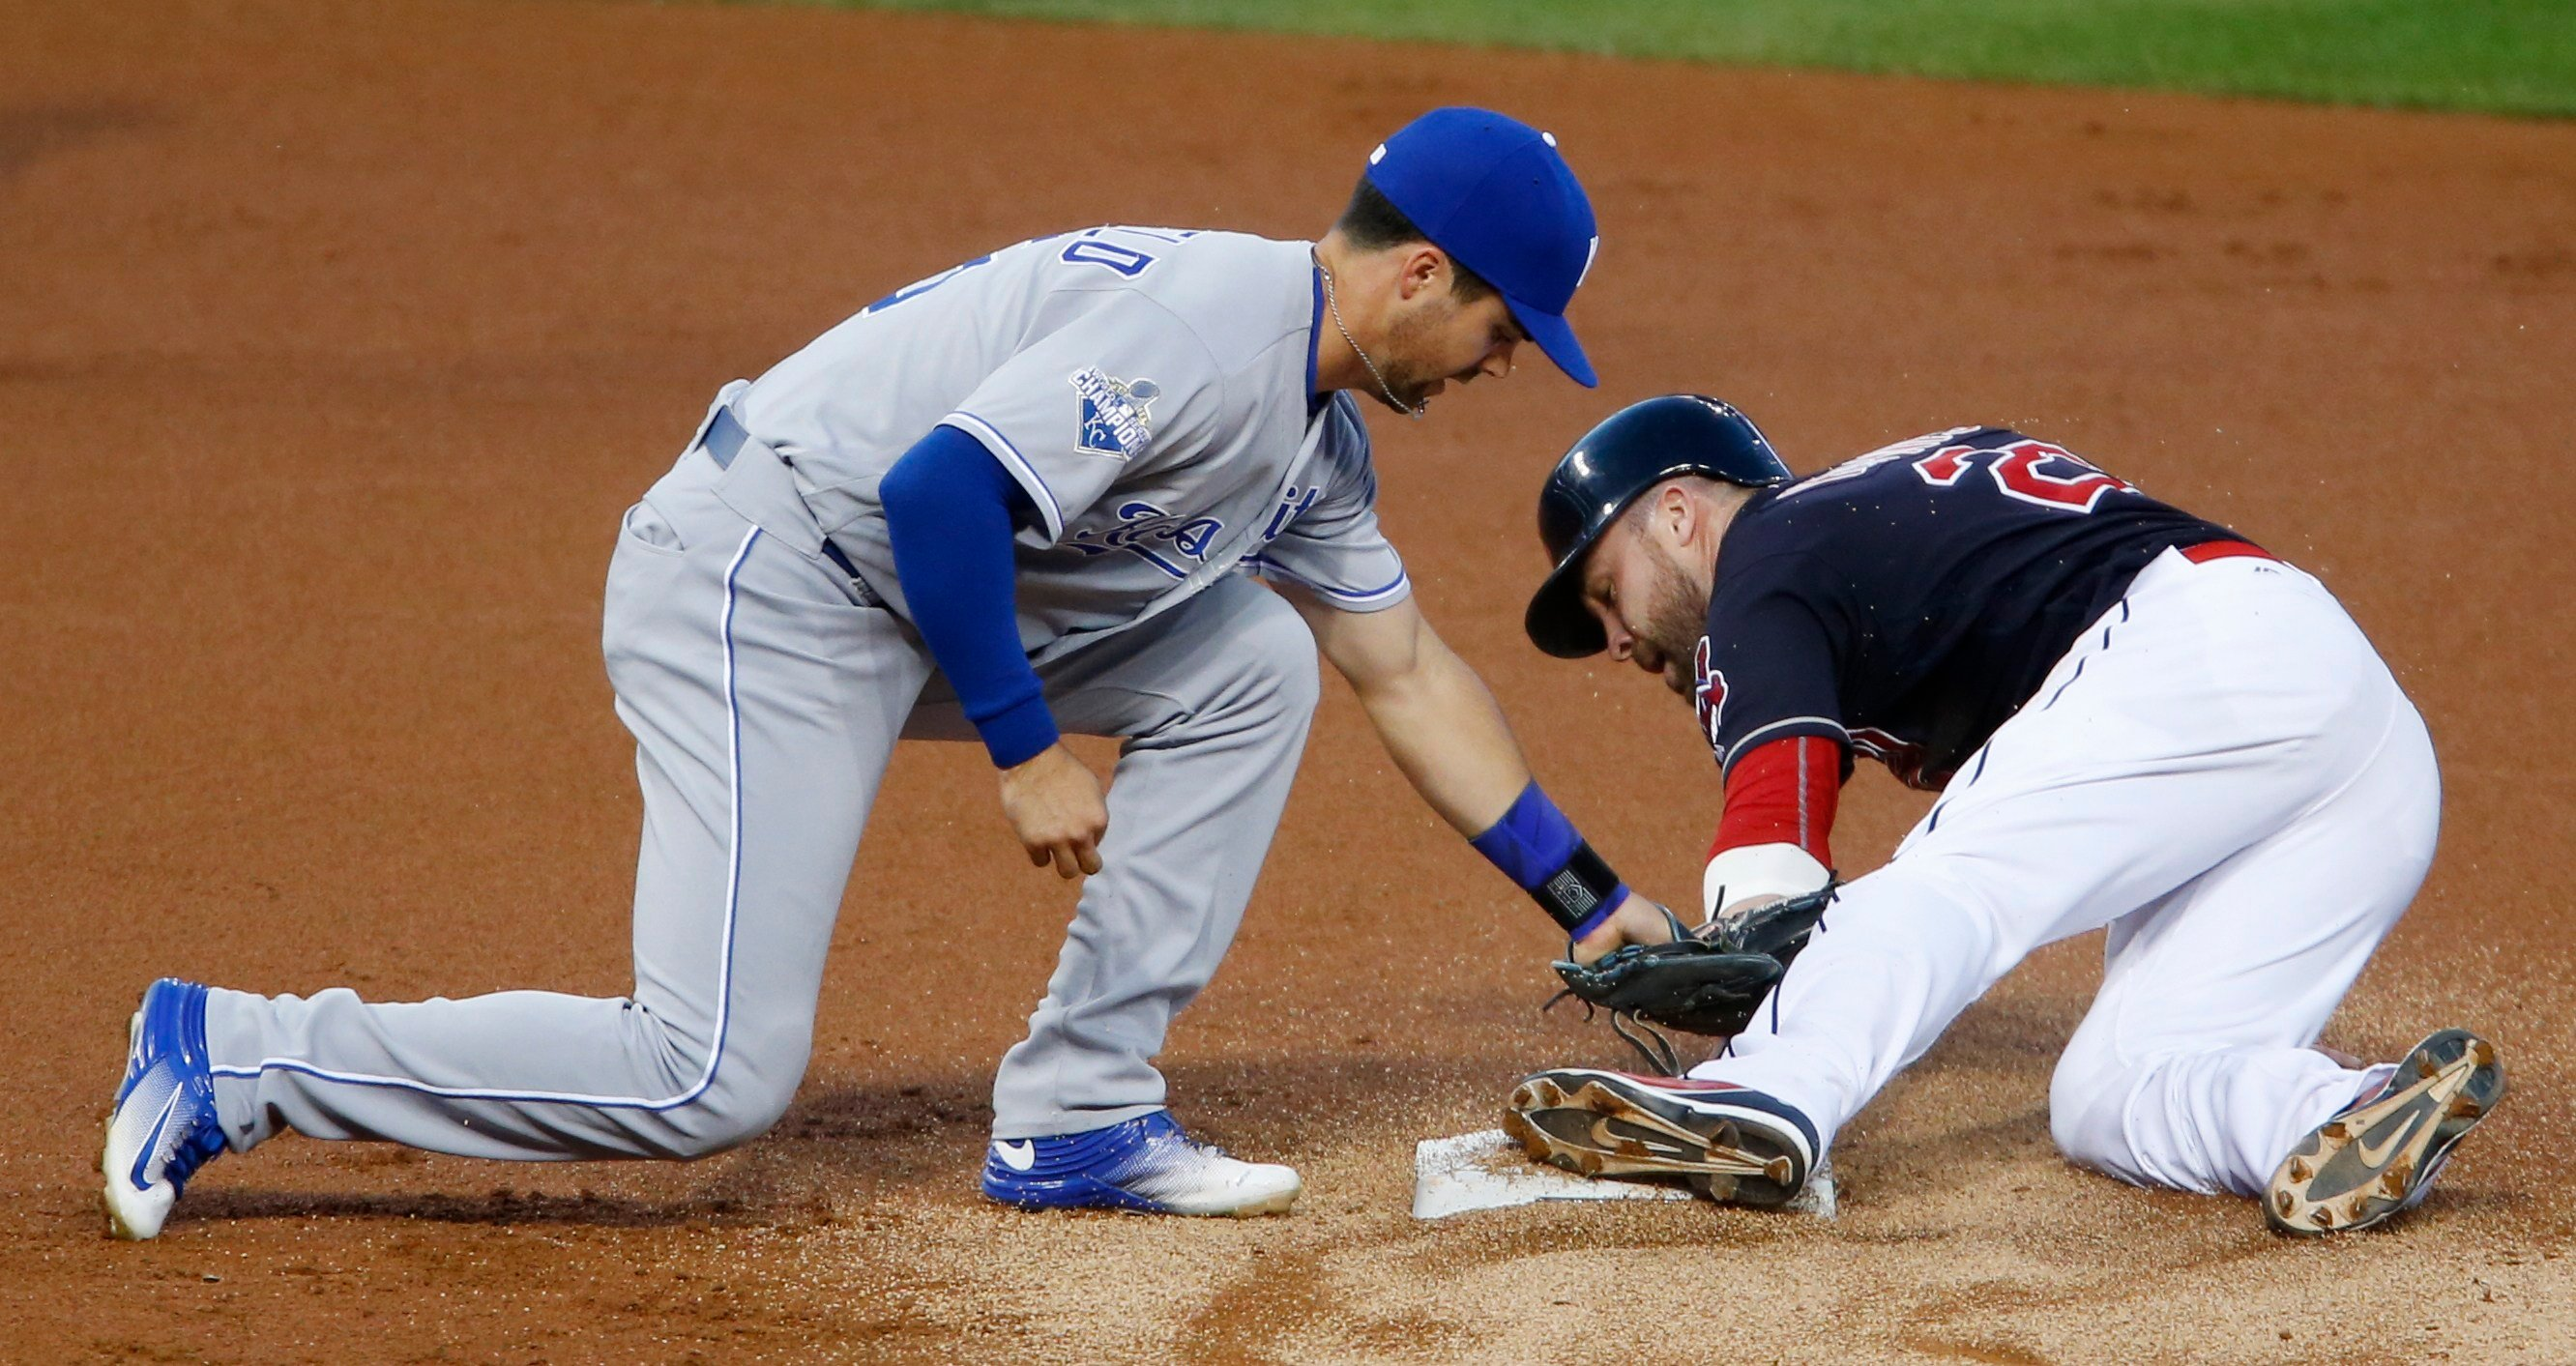 Cleveland Indians' Jason Kipnis, right, steals second base as Kansas City Royals' Whit Merrifield applies a late tag during the first inning of a baseball game Tuesday, Sept. 20, 2016, in Cleveland. (AP Photo/Ron Schwane)